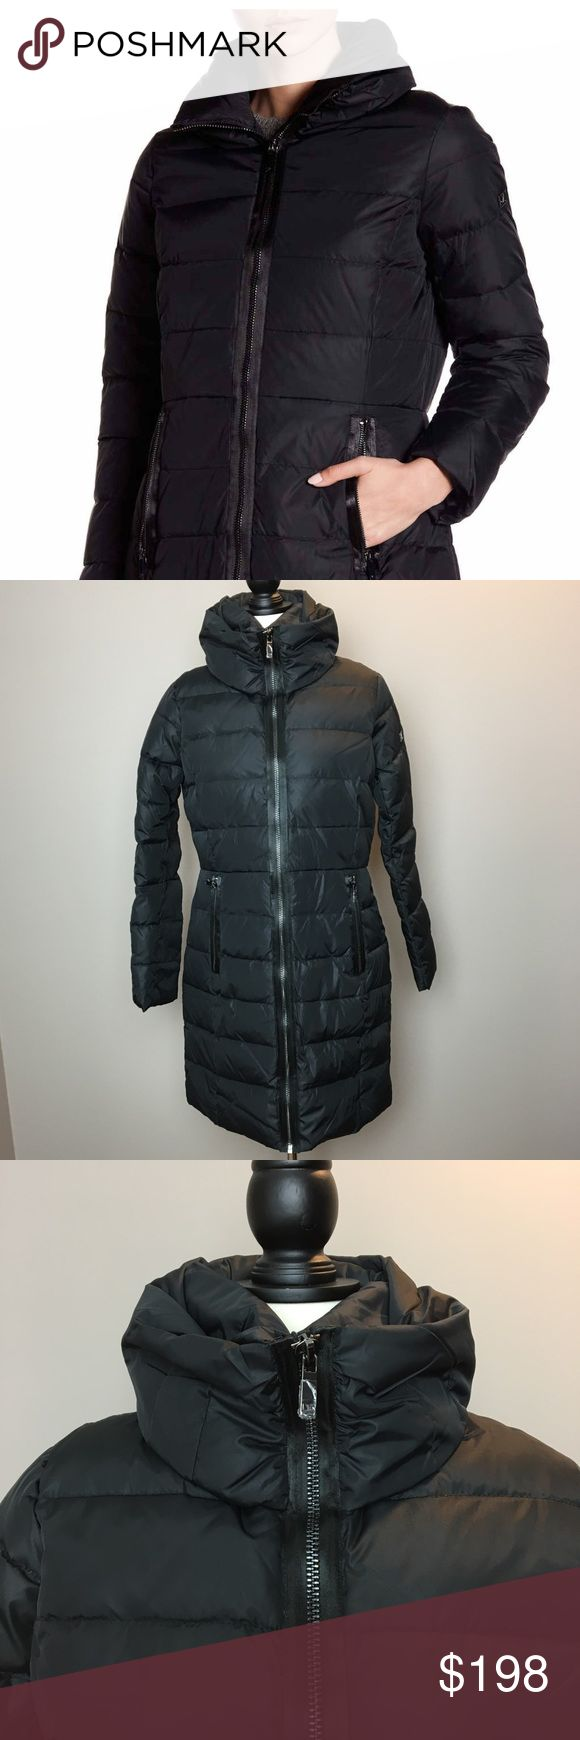 DVF $498 hooded black puffer jacket Brand new, super warm winter coat. Has hood that rolls into collar. DVF metal logo on arm, inner lining. Perfect for everyday wear this winter! This was a Christmas gift, from Nordstrom but no receipt. Comes in original plastic packaging all zippers remain covered in perfect condition! Size SMALL Diane Von Furstenberg Jackets & Coats Puffers